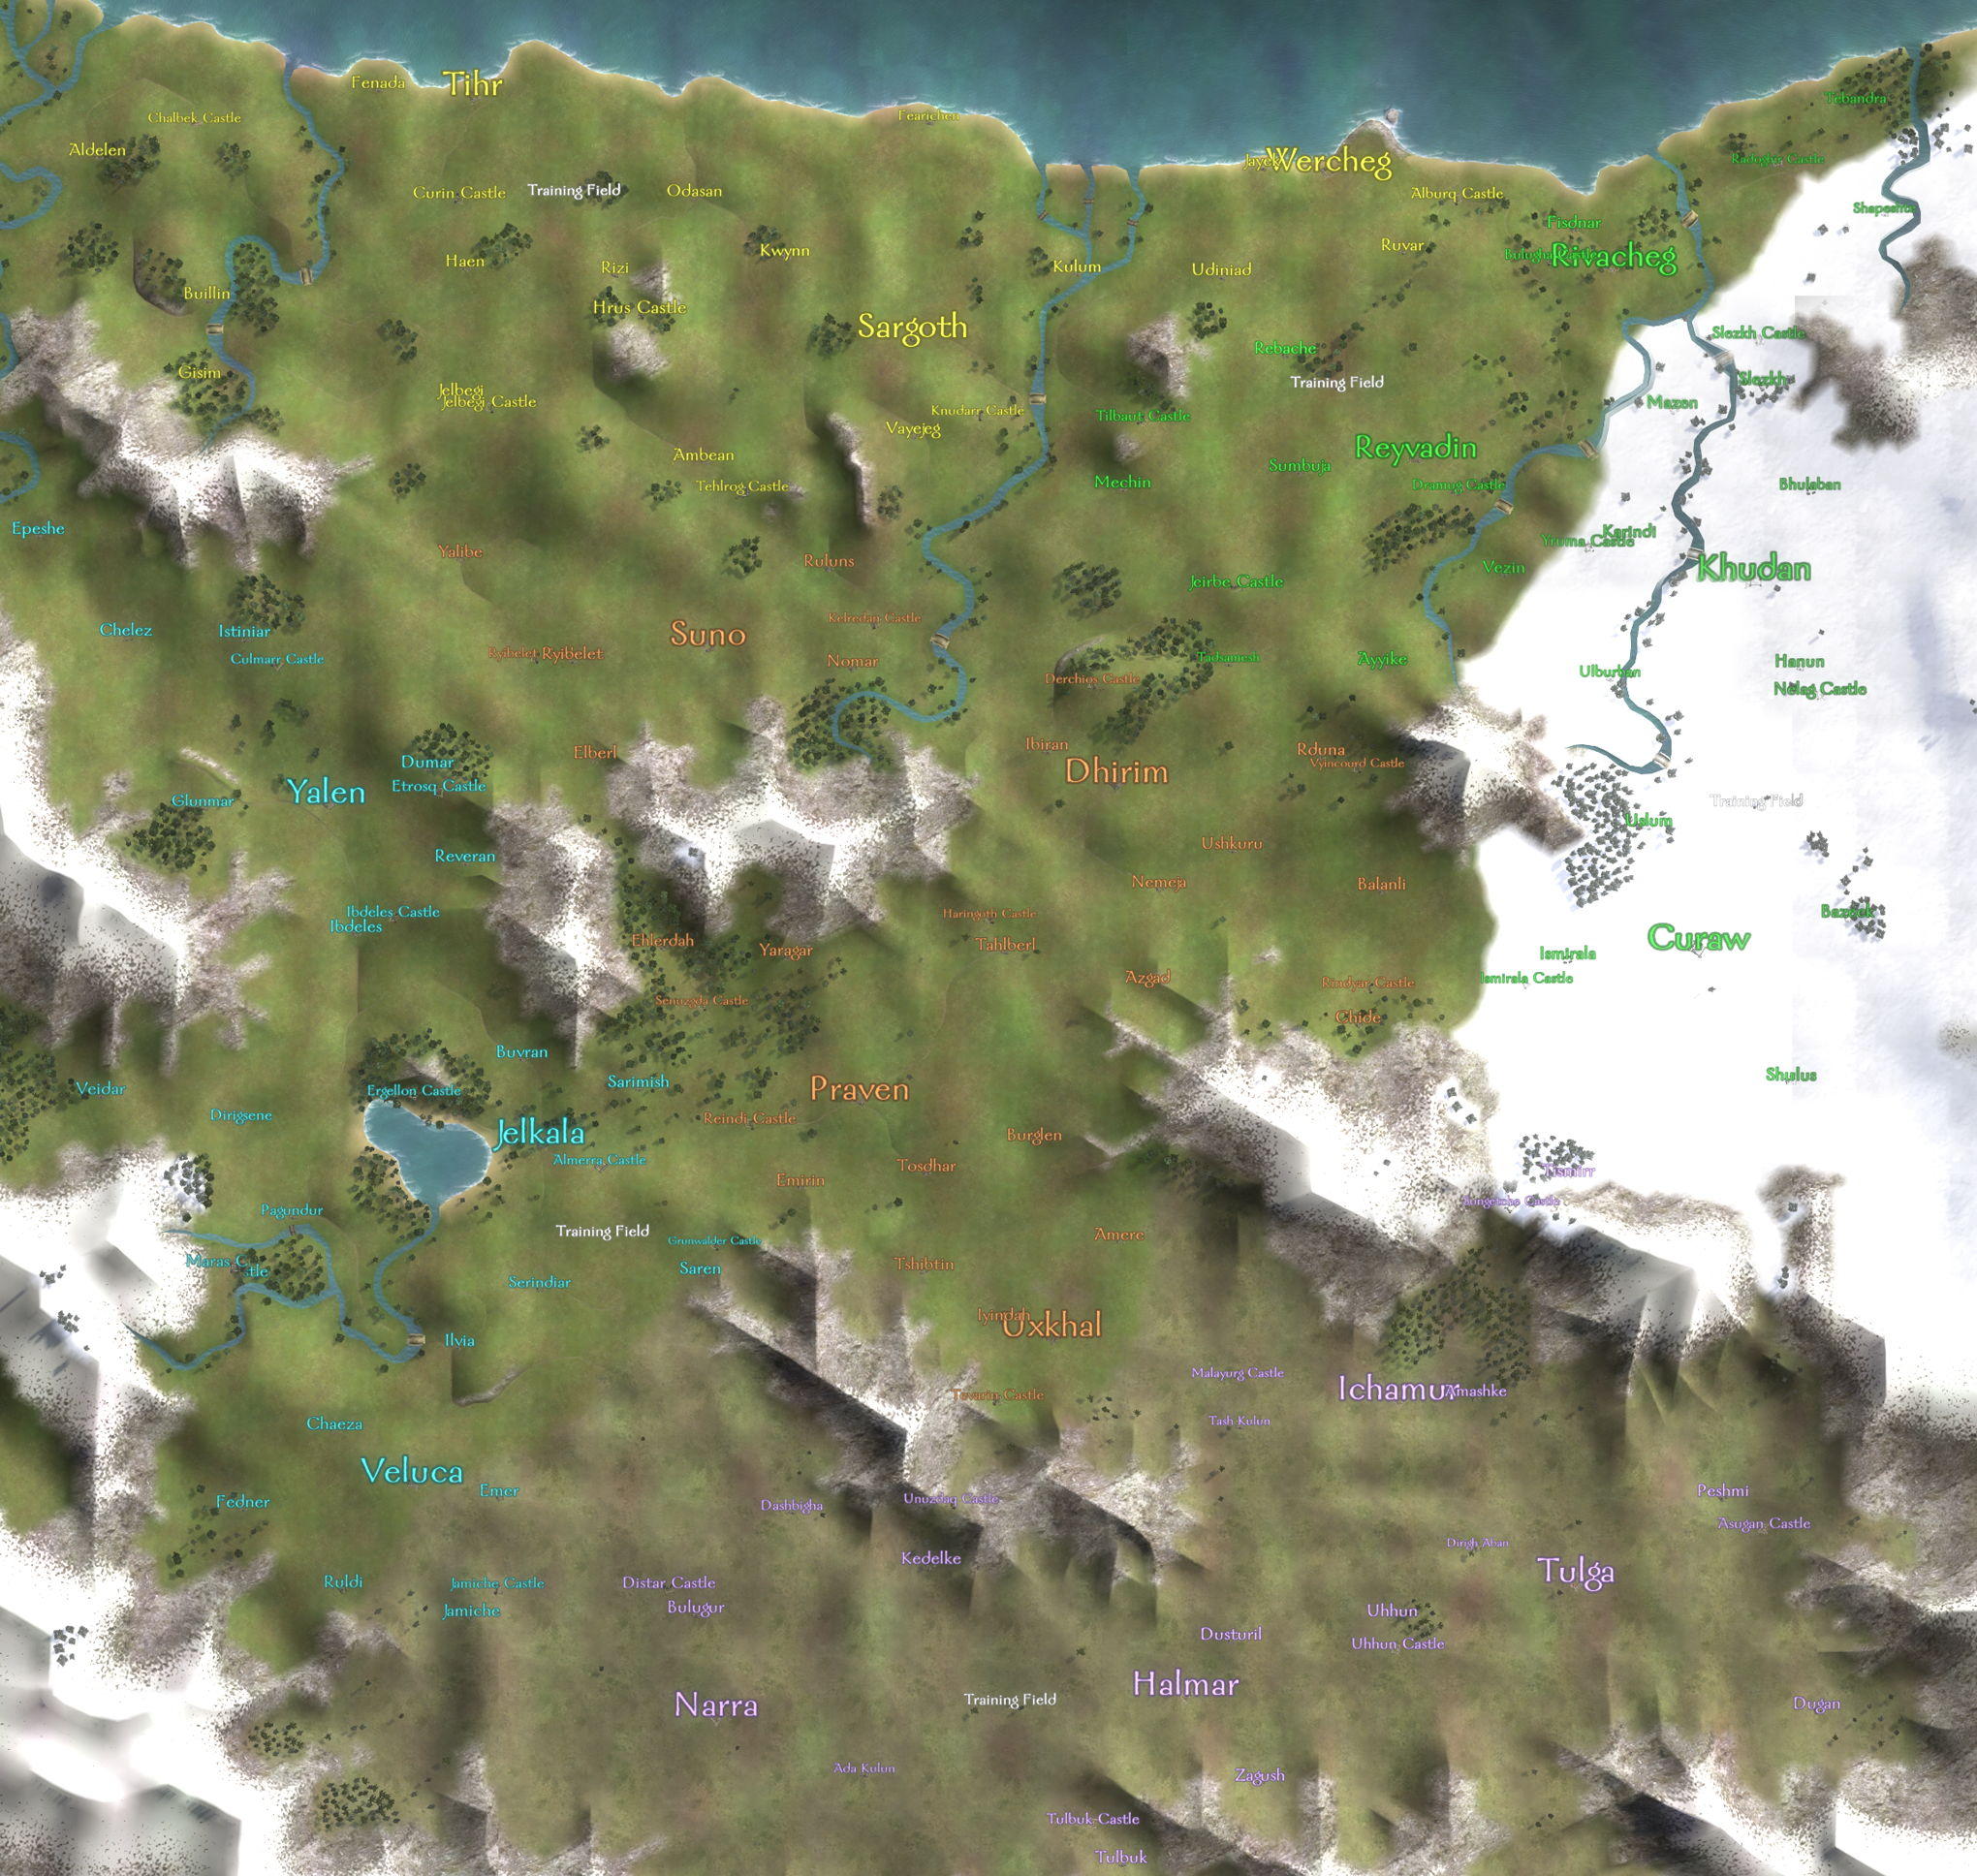 Mountblademaps strategywiki the video game walkthrough and the complete world map view or download the full size version gumiabroncs Images